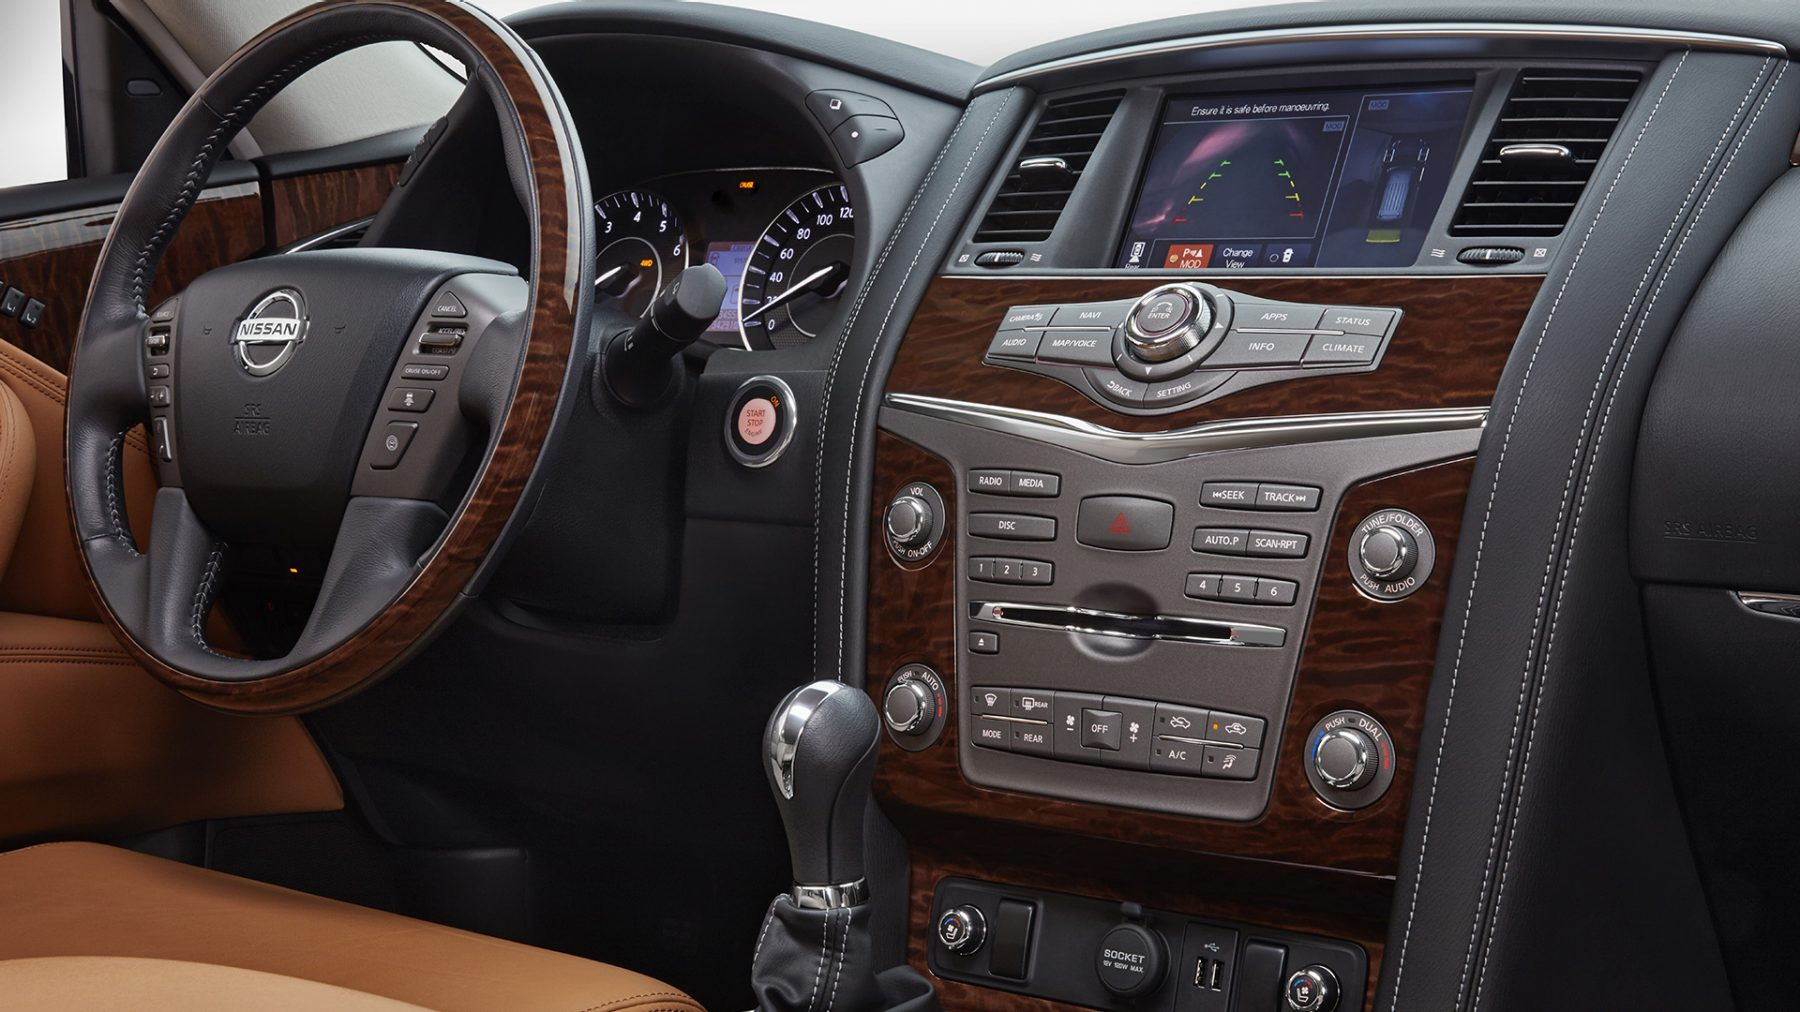 SUV interior - dashboard and steering